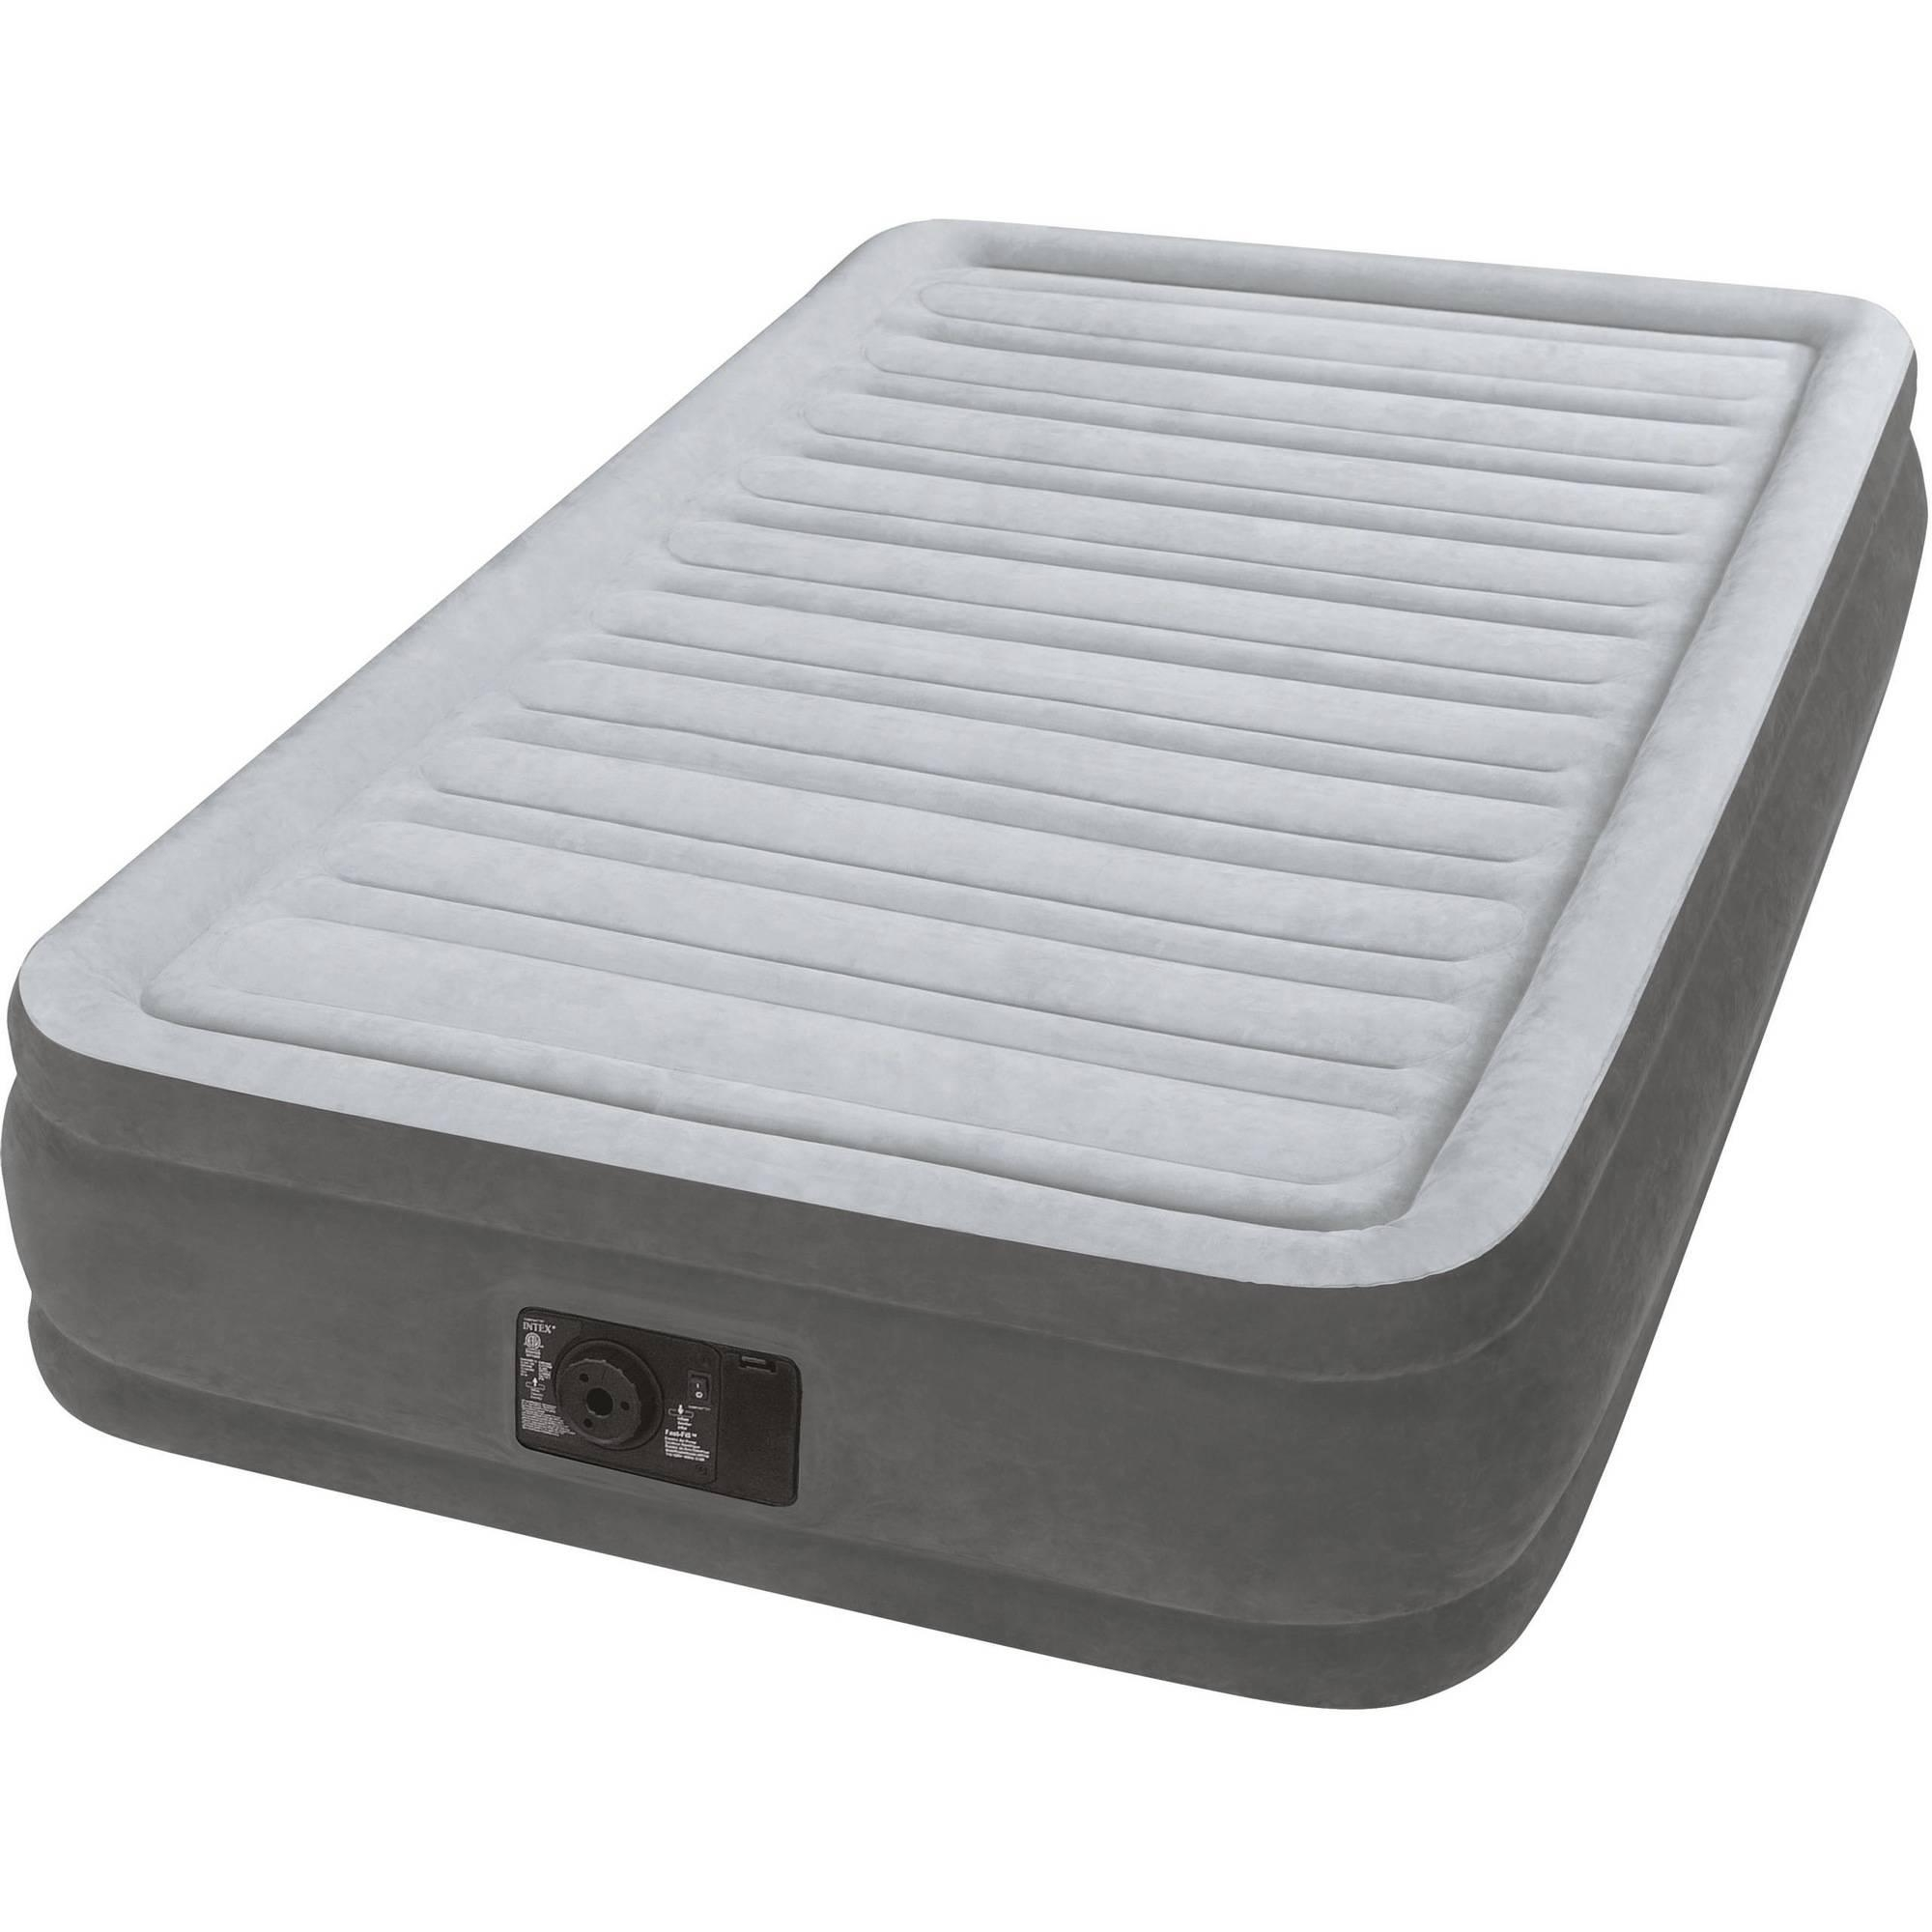 Mattresses : Mattresses For Children's Beds Air Beds Like Sleep Pertaining To Inflatable Full Size Mattress (Image 17 of 20)